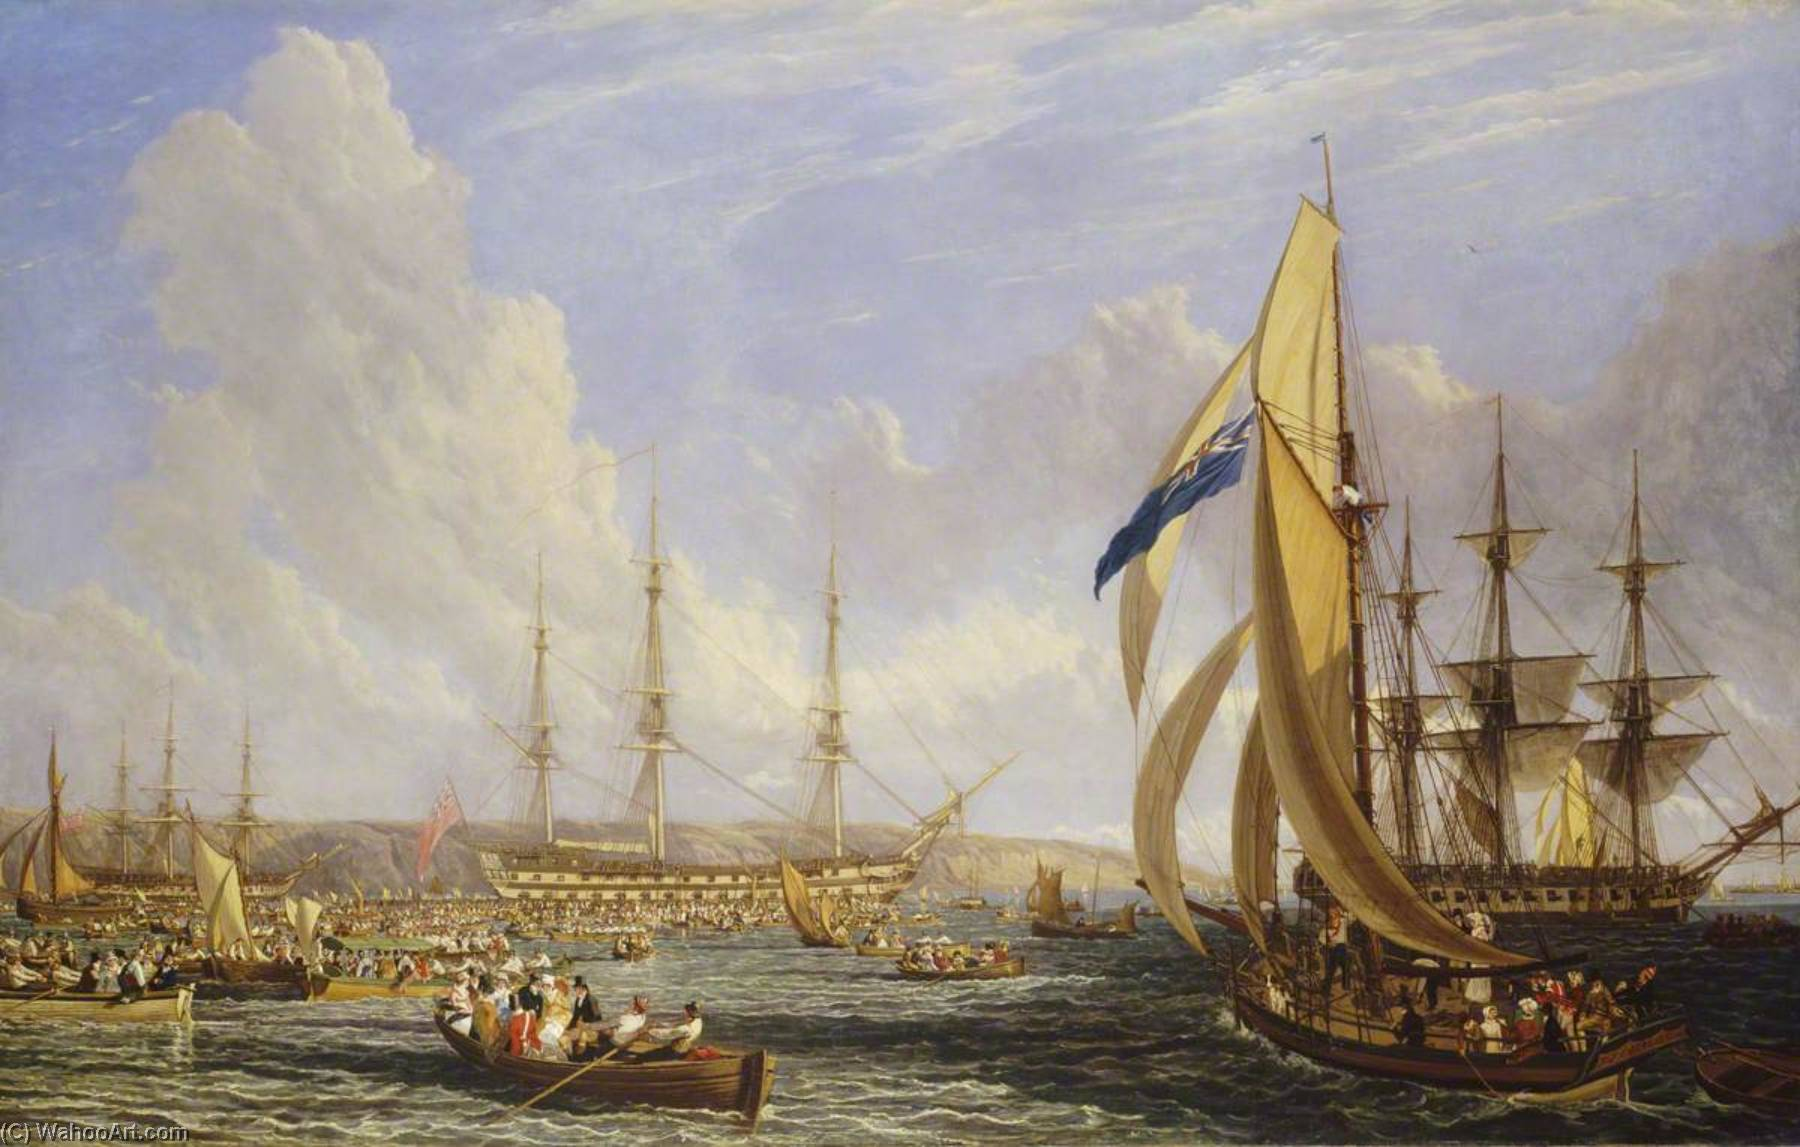 Il 'Bellerophon' con napoleone A bordo a plymouth ( 26 July–4 Agosto 1815 ), olio su tela di John James Chalon (1778-1854)